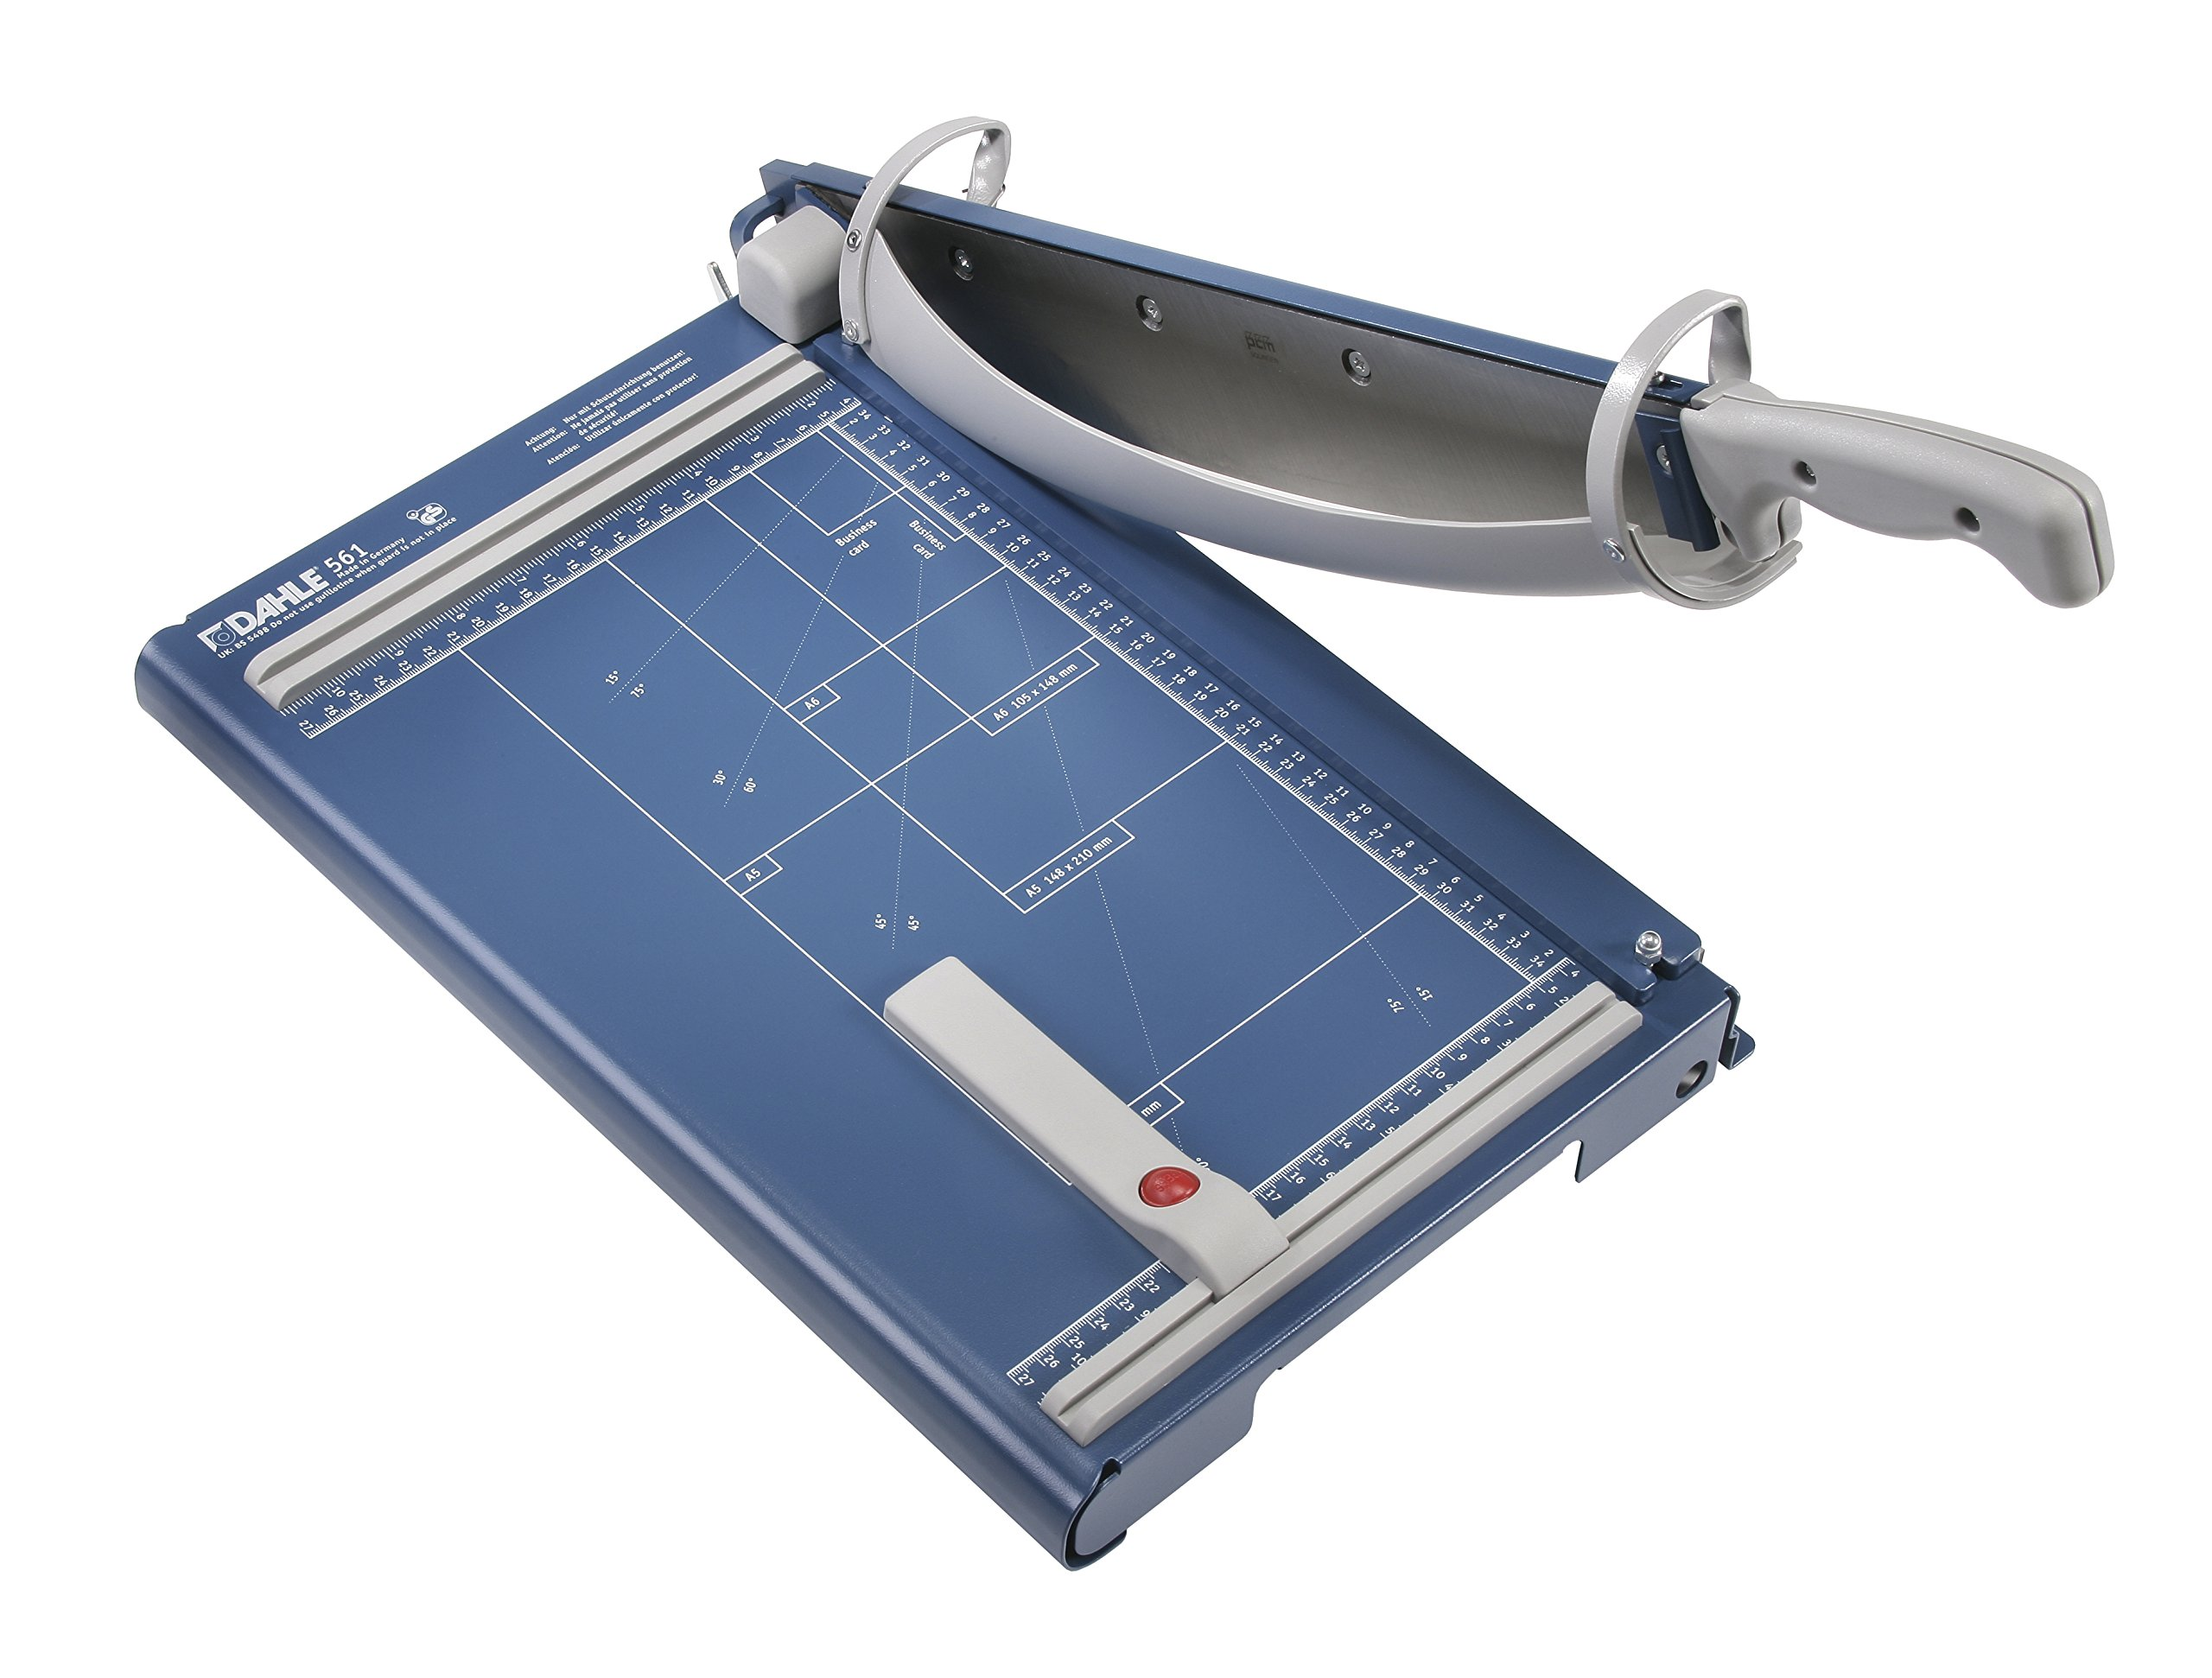 Dahle 561 Premium Guillotine Trimmer, 14-1/8'' Cut Length, 35 Sheet Capacity, Self-Sharpening Blade, Automatic Clamp, w/Safety Guard by Dahle